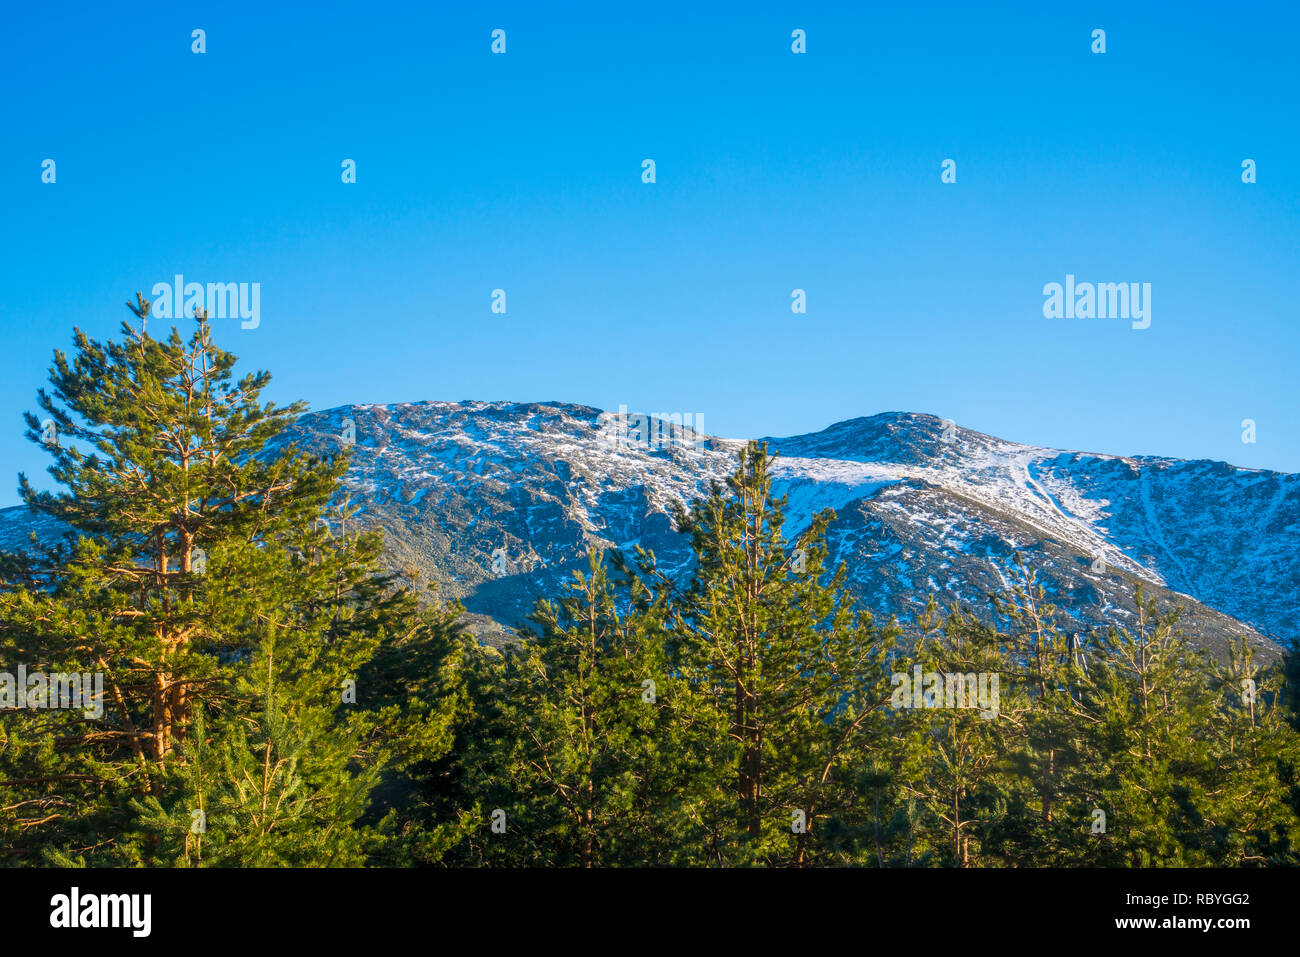 Landscape. Sierra de Guadarrama National Park, Madrid province, Spain. Stock Photo